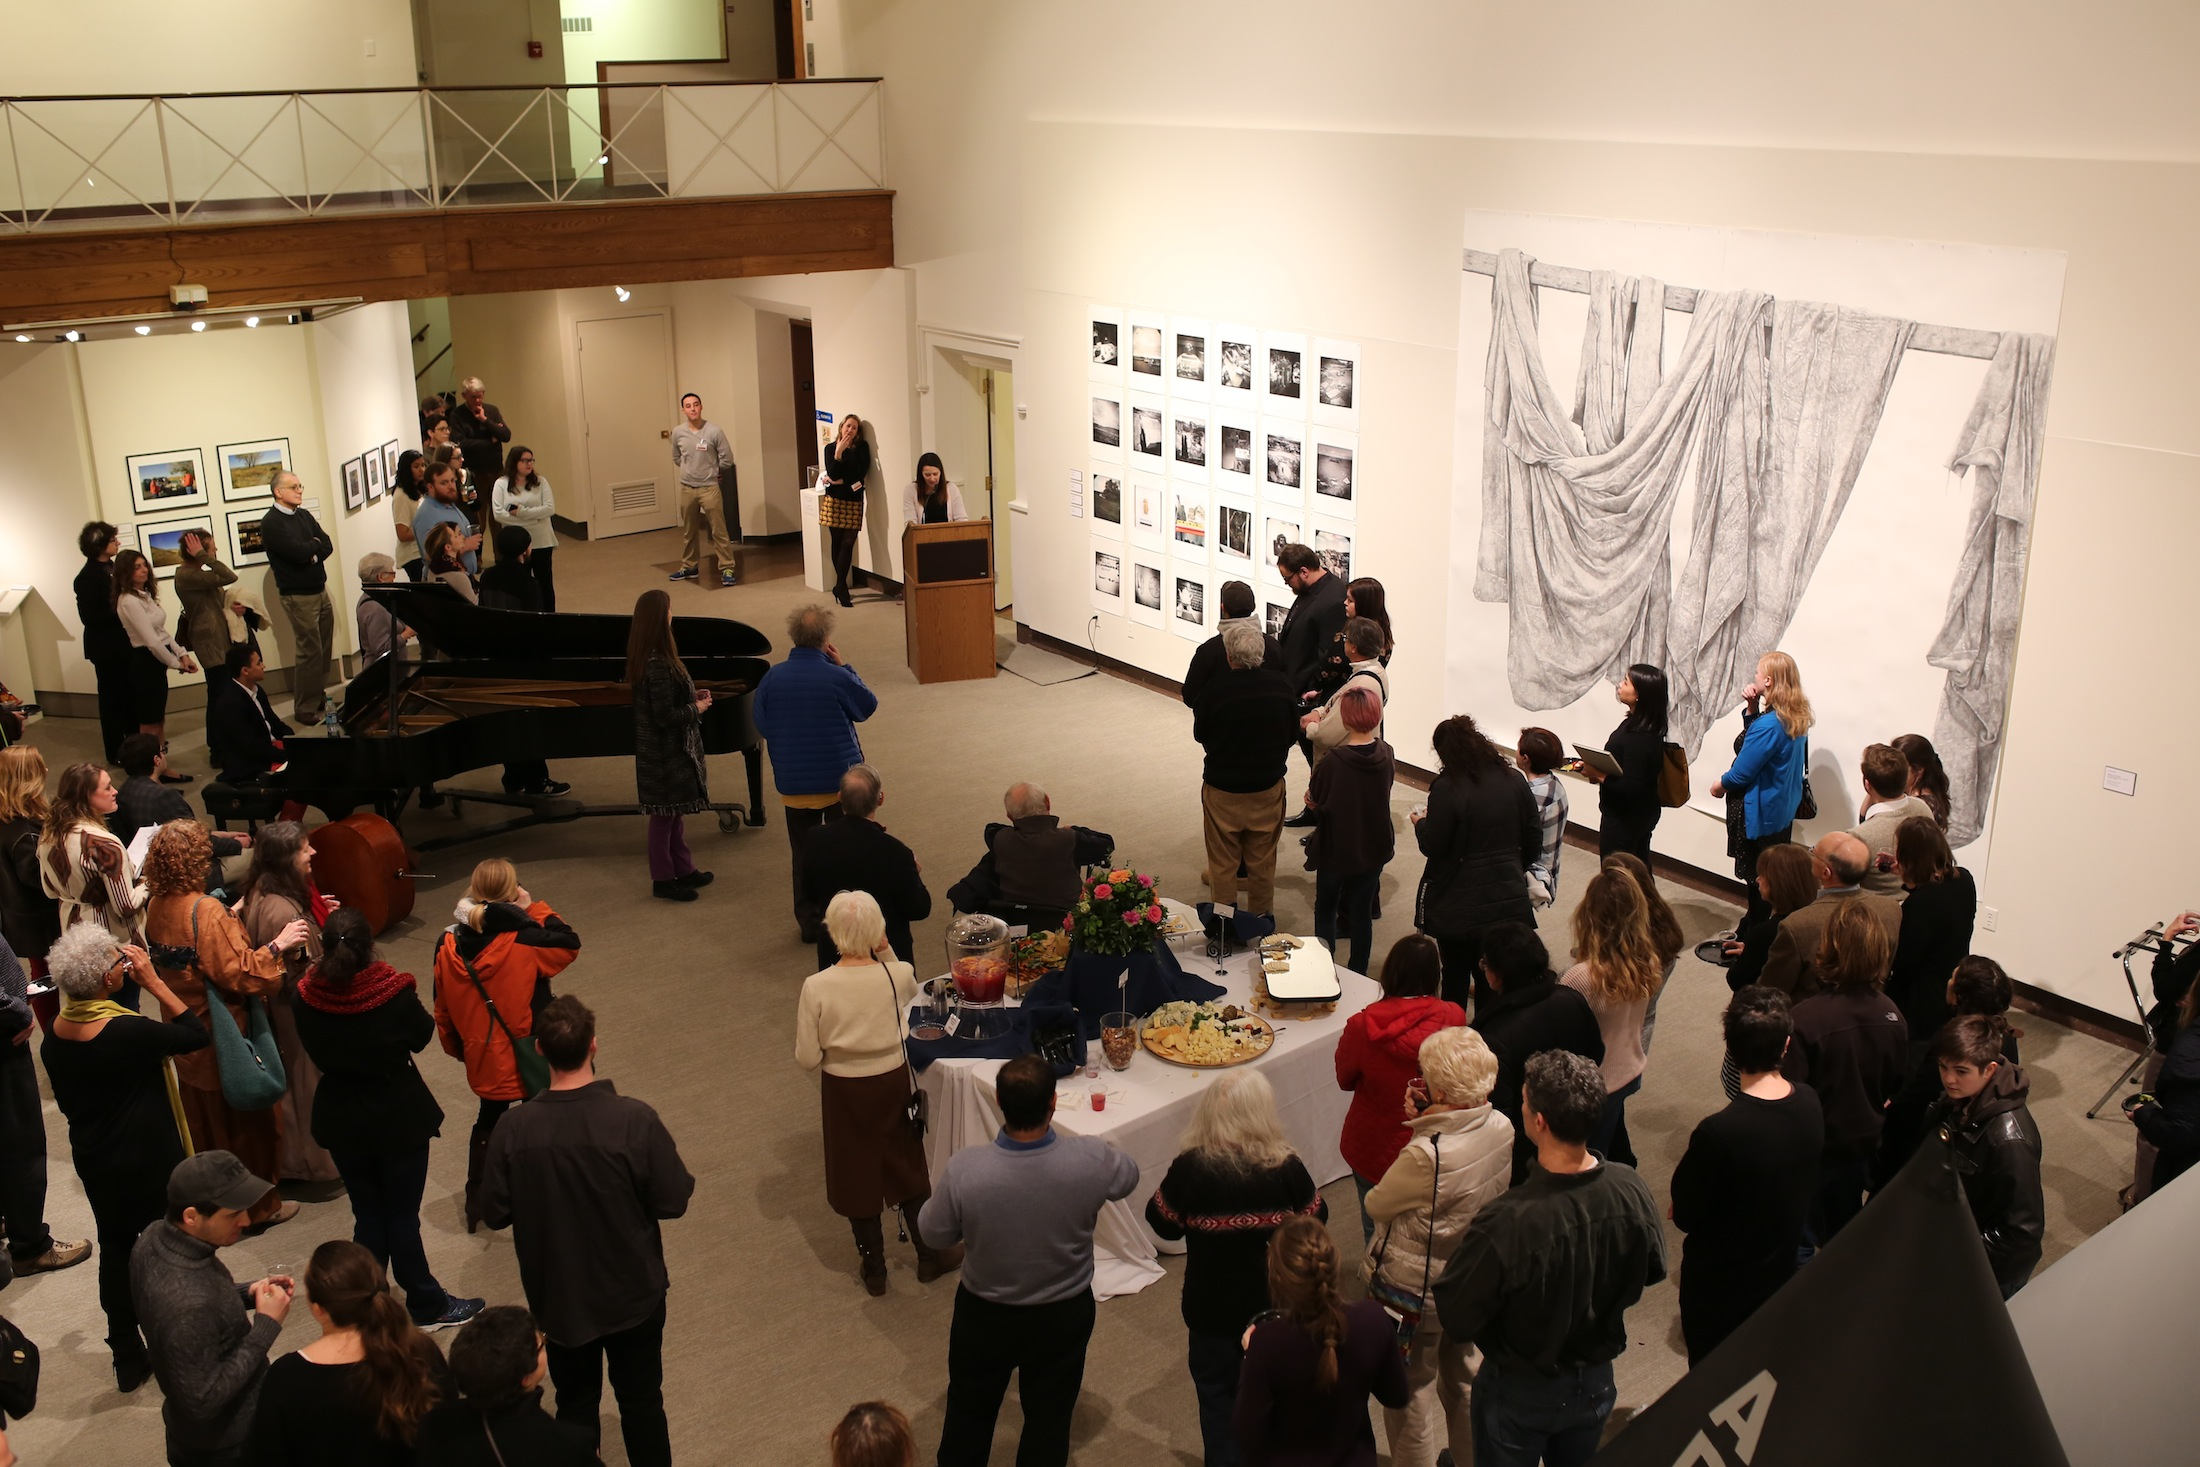 A new exhibit opens in the William Benton Museum on Thursday showcasing permanent and faculty's work from the School of Fine Arts at UConn. (Tyler Benton/The Daily Campus)